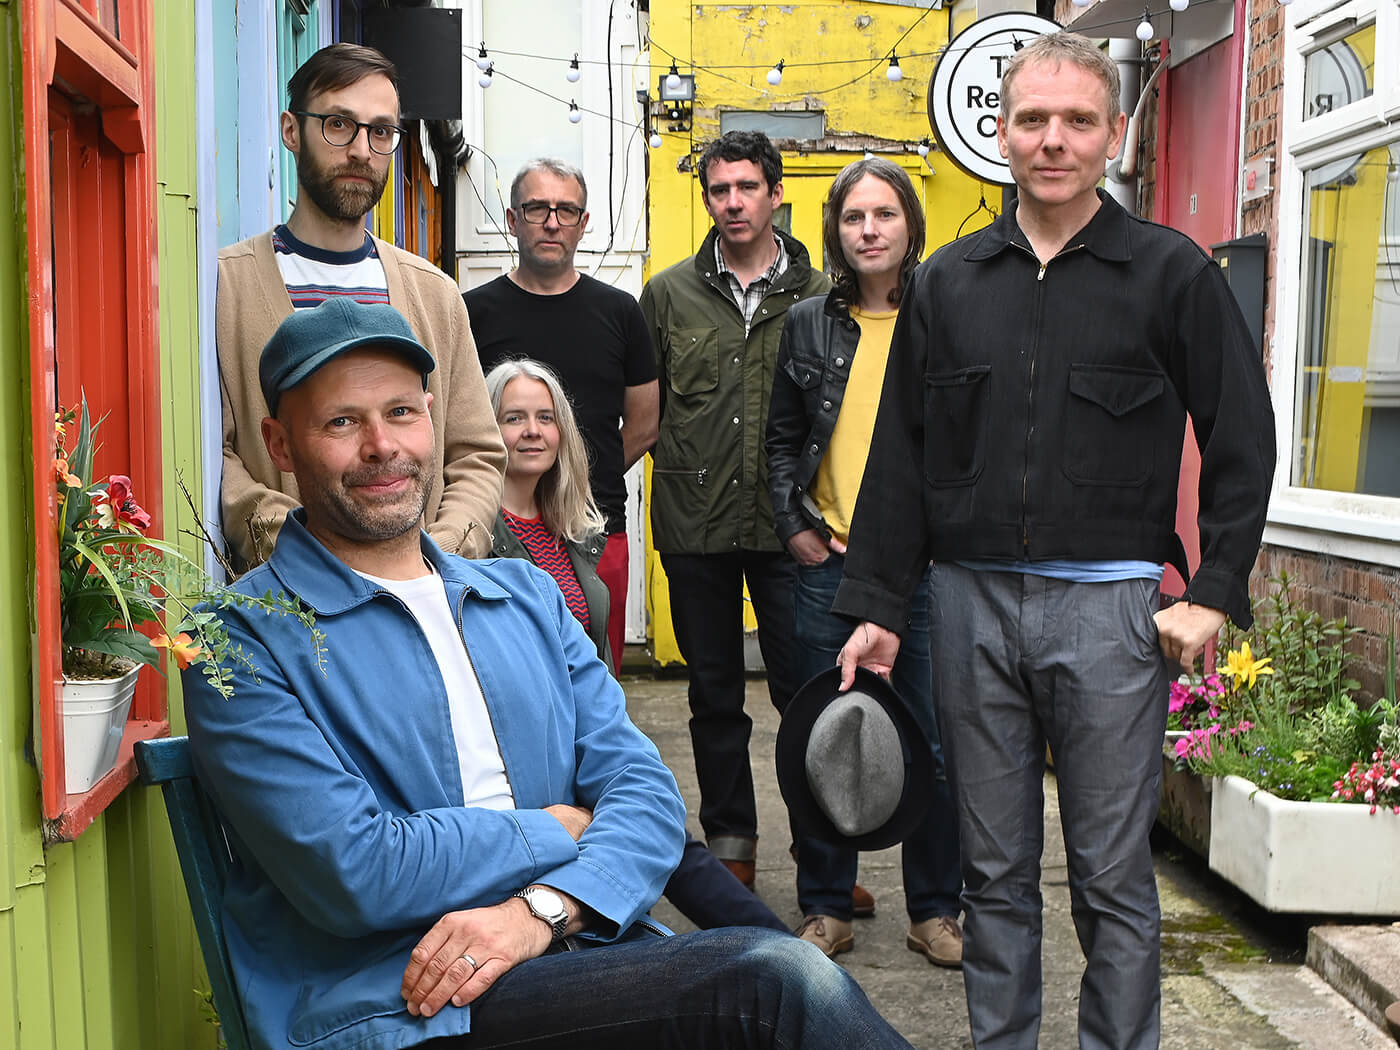 Collaborate with Belle & Sebastian on their lockdown song